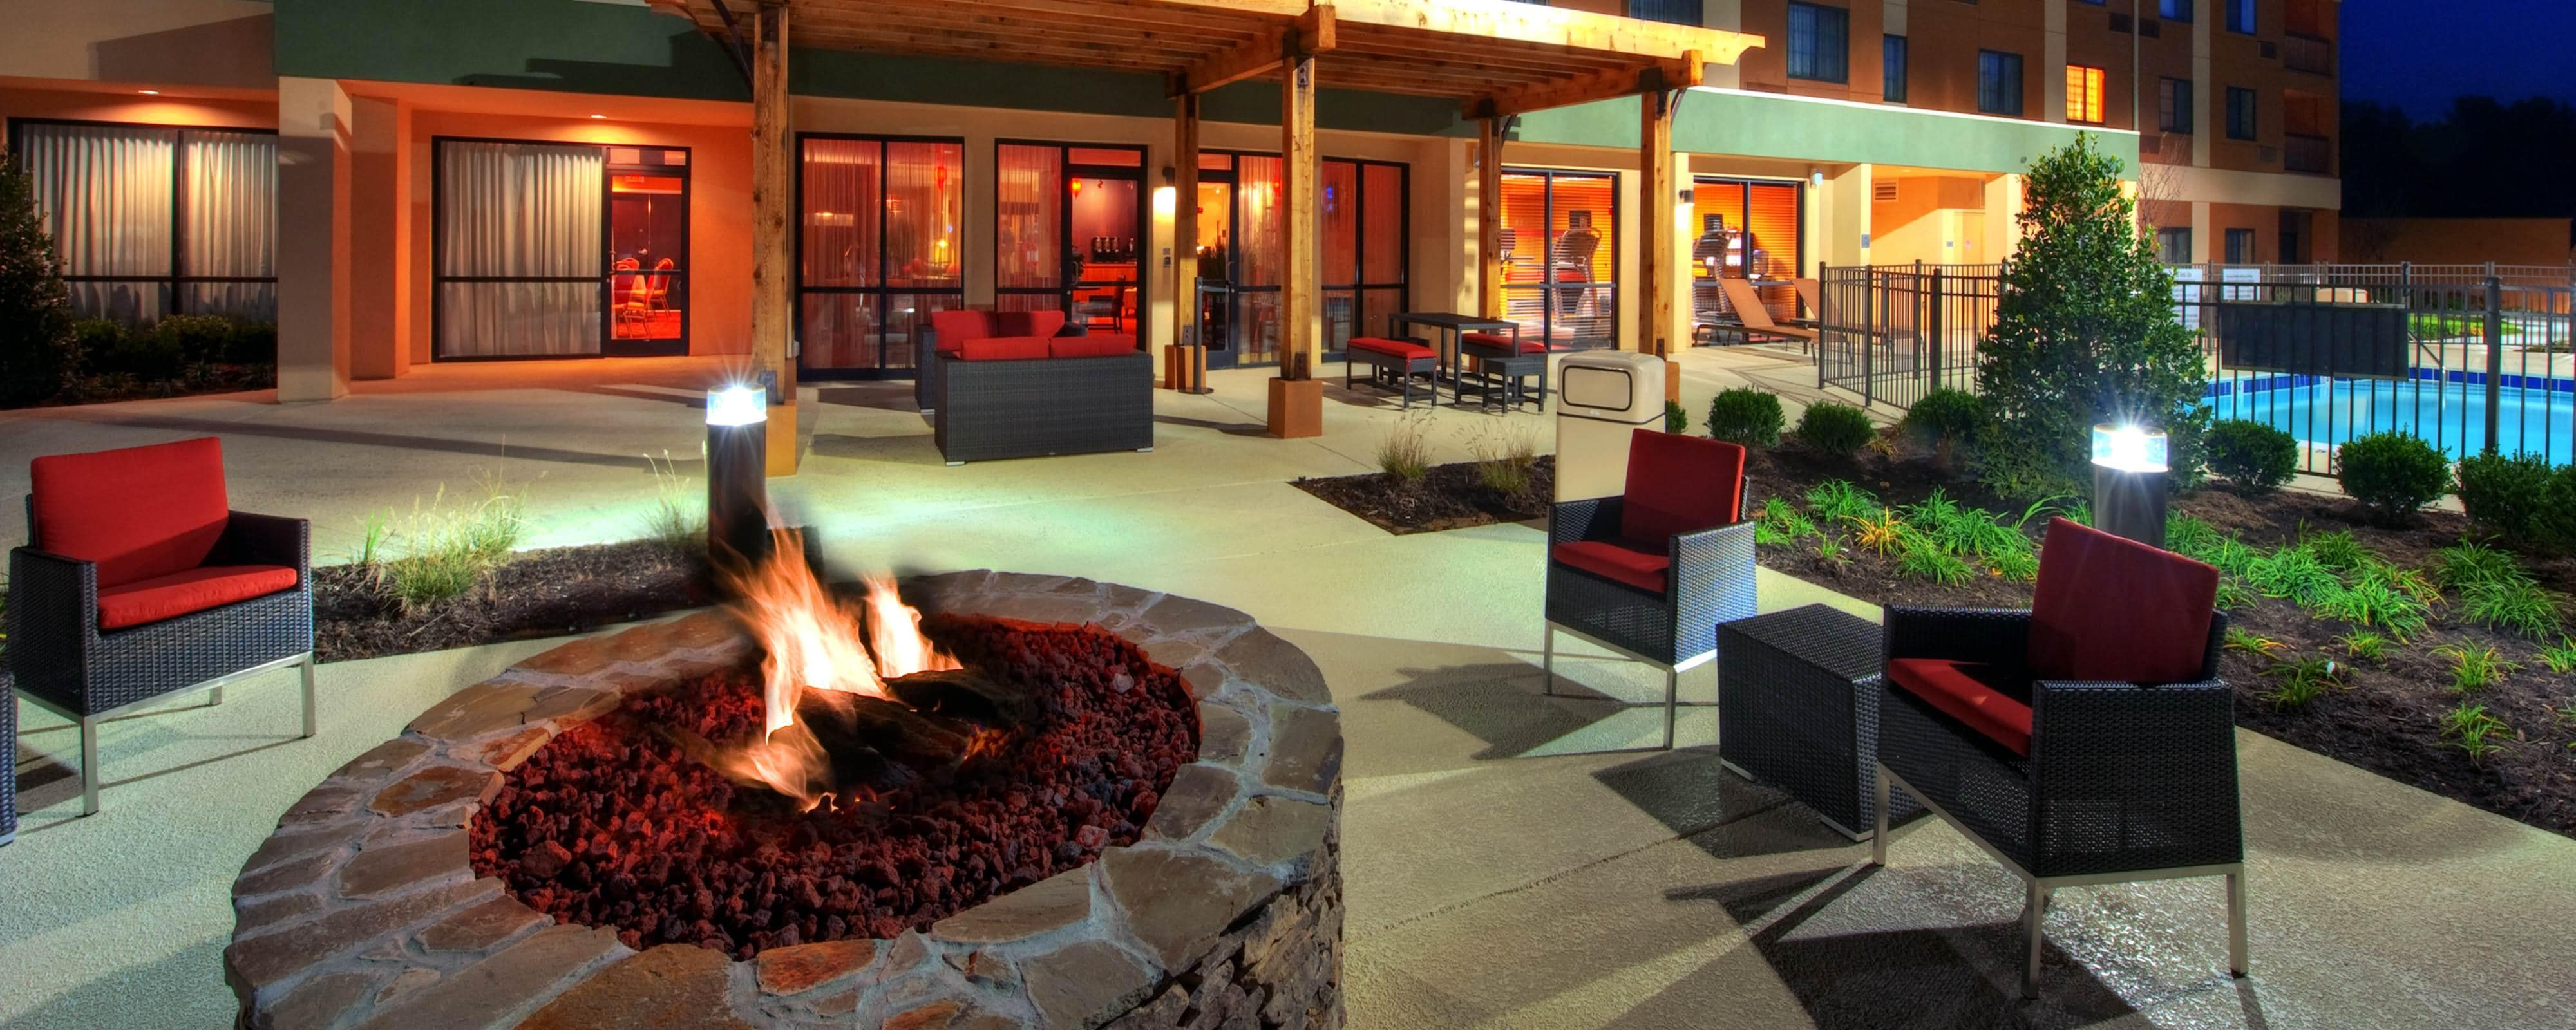 Fire Pit – Johnson City Courtyard